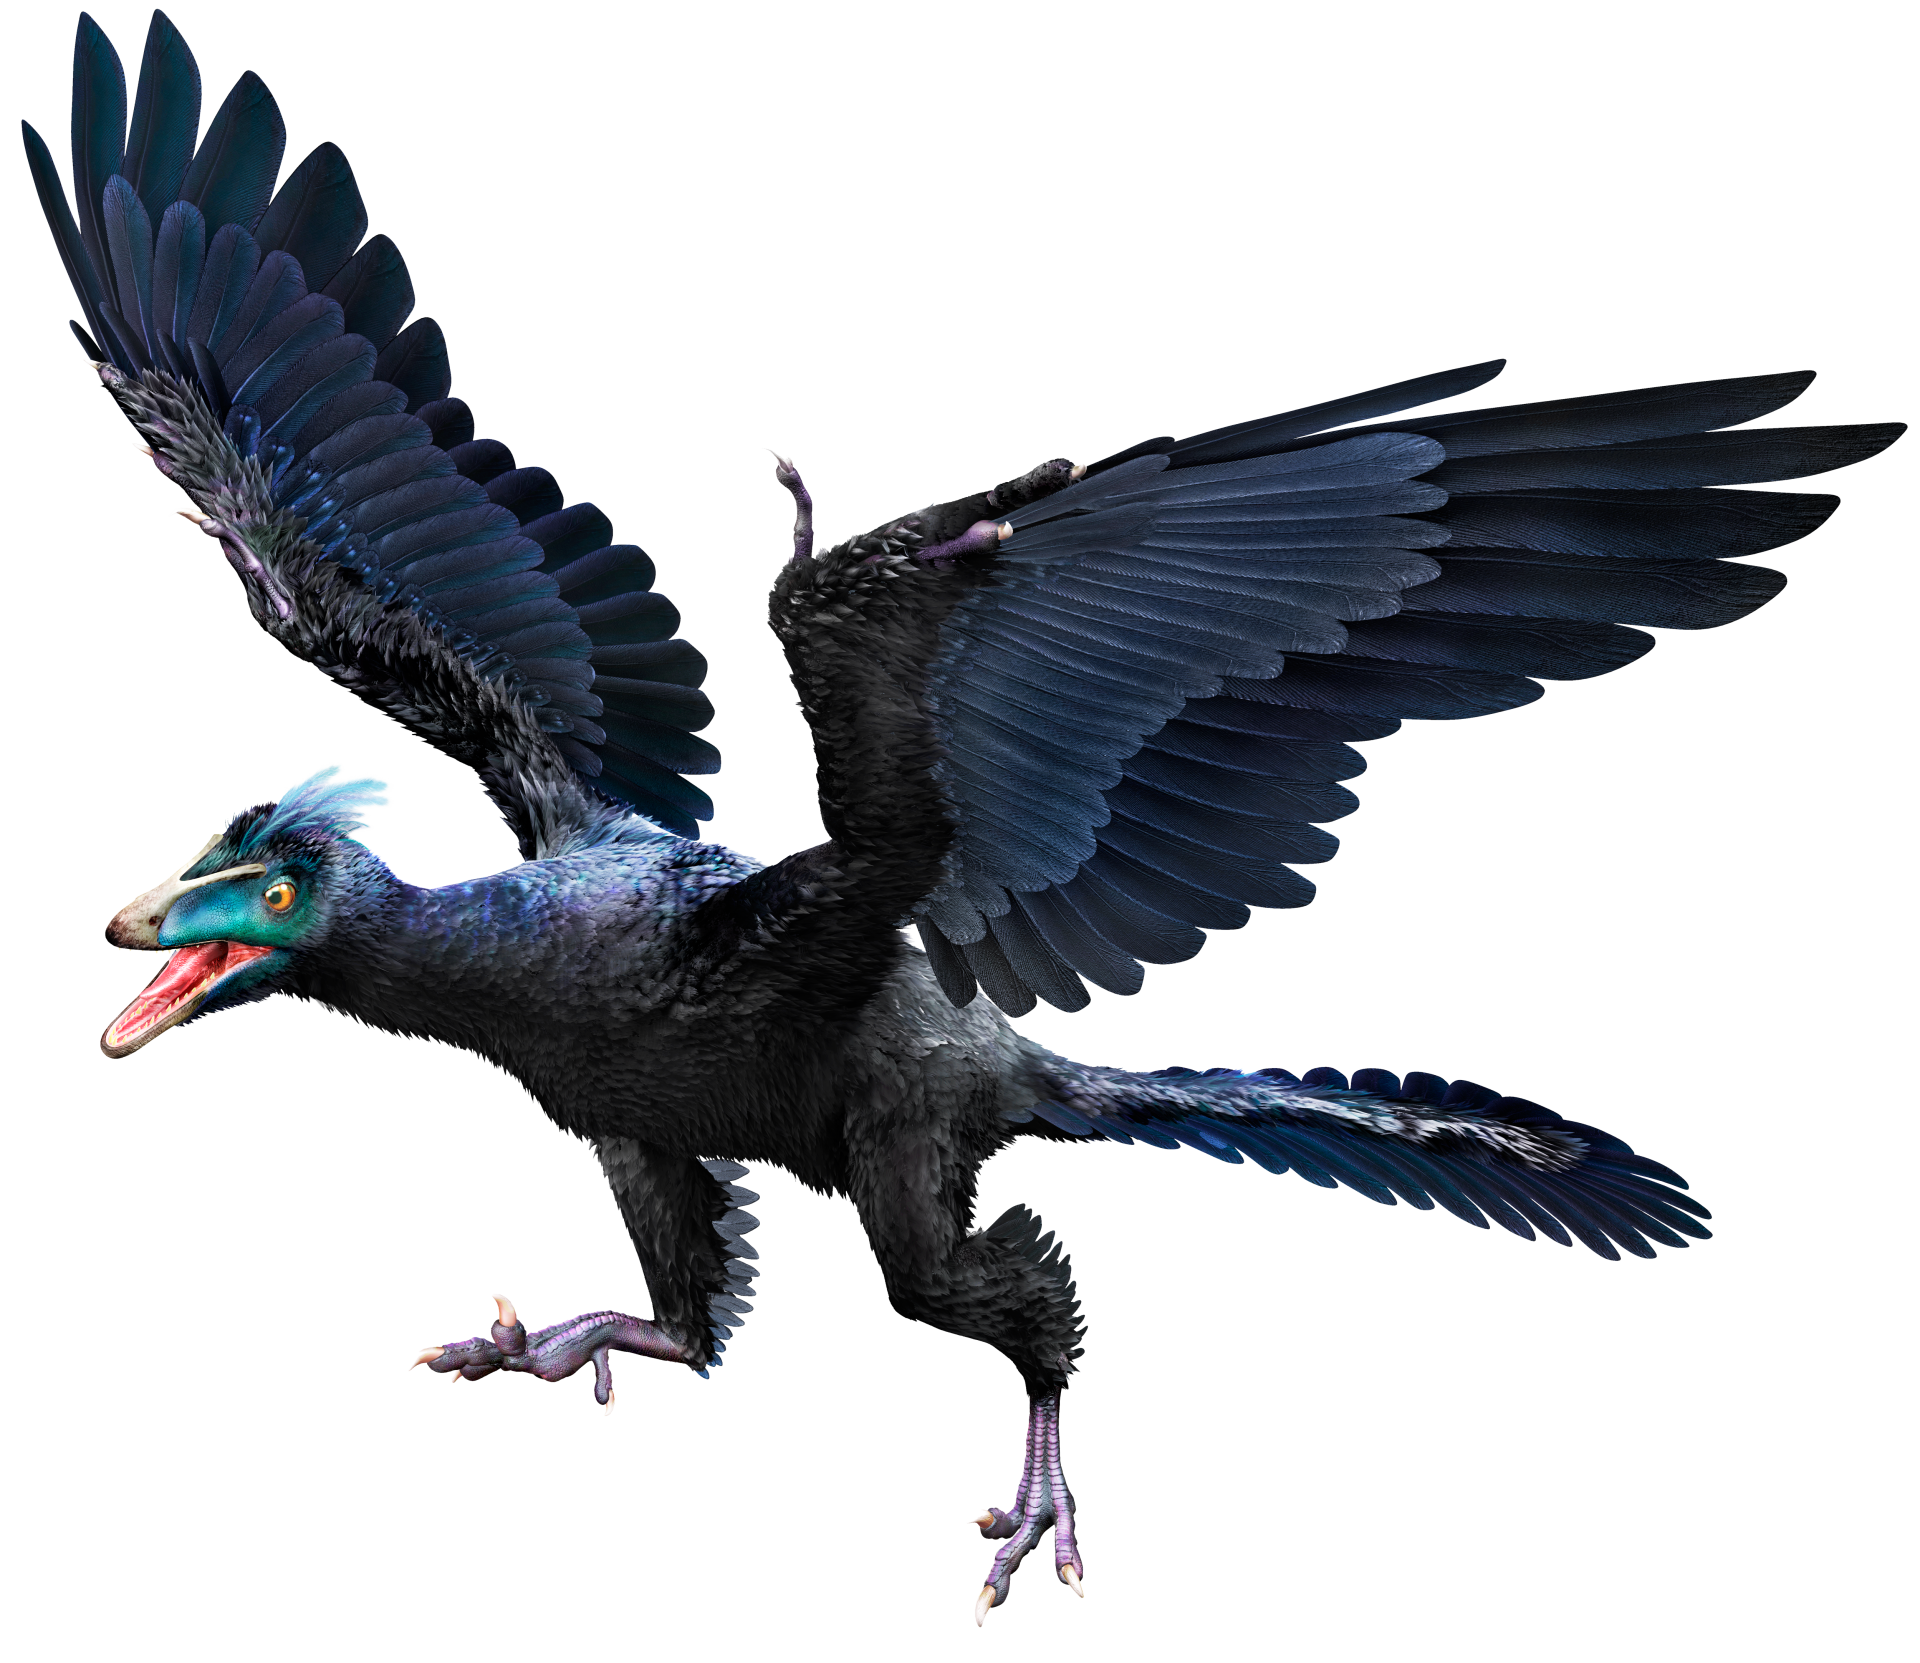 Archaeopteryx | Archaeopteryx Facts | DK Find Out Archaeopteryx Not A Transitional Form